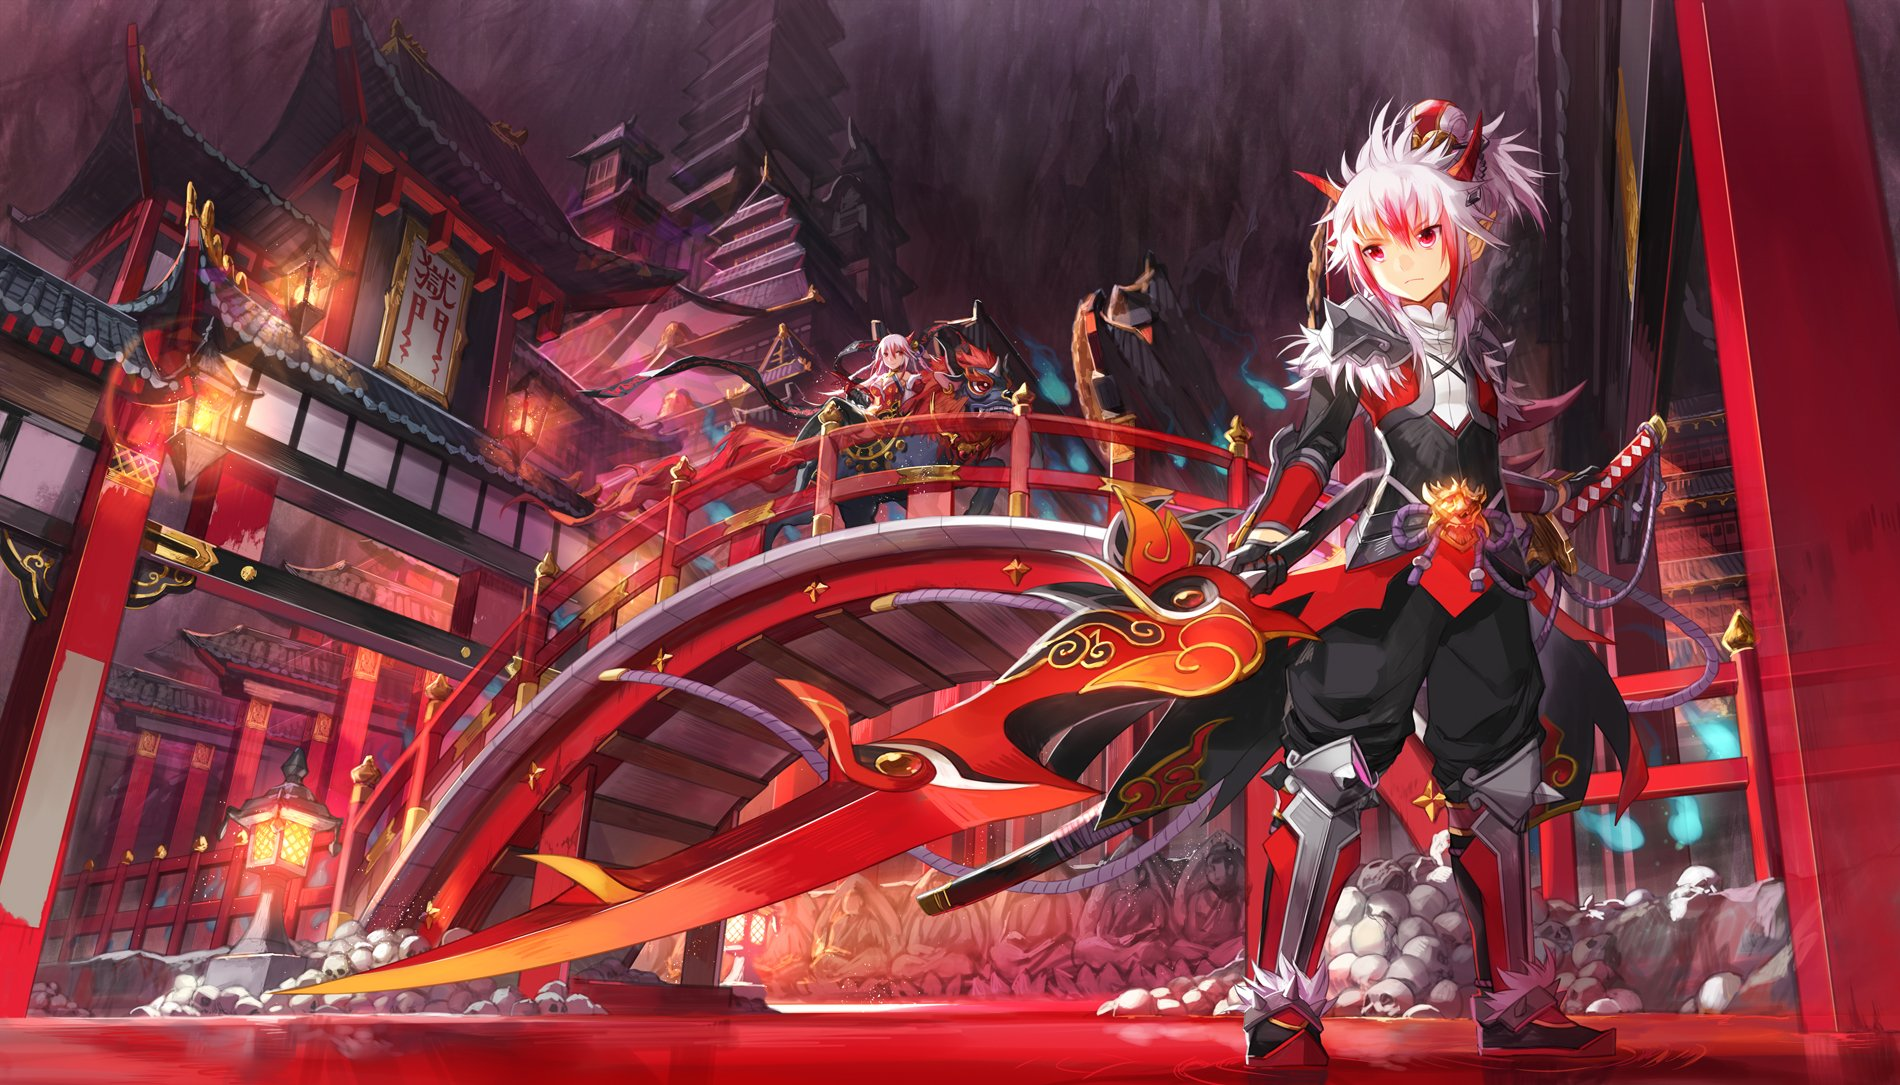 126 elsword hd wallpapers background images wallpaper abyss hd wallpaper background image id576865 1900x1085 video game elsword voltagebd Image collections